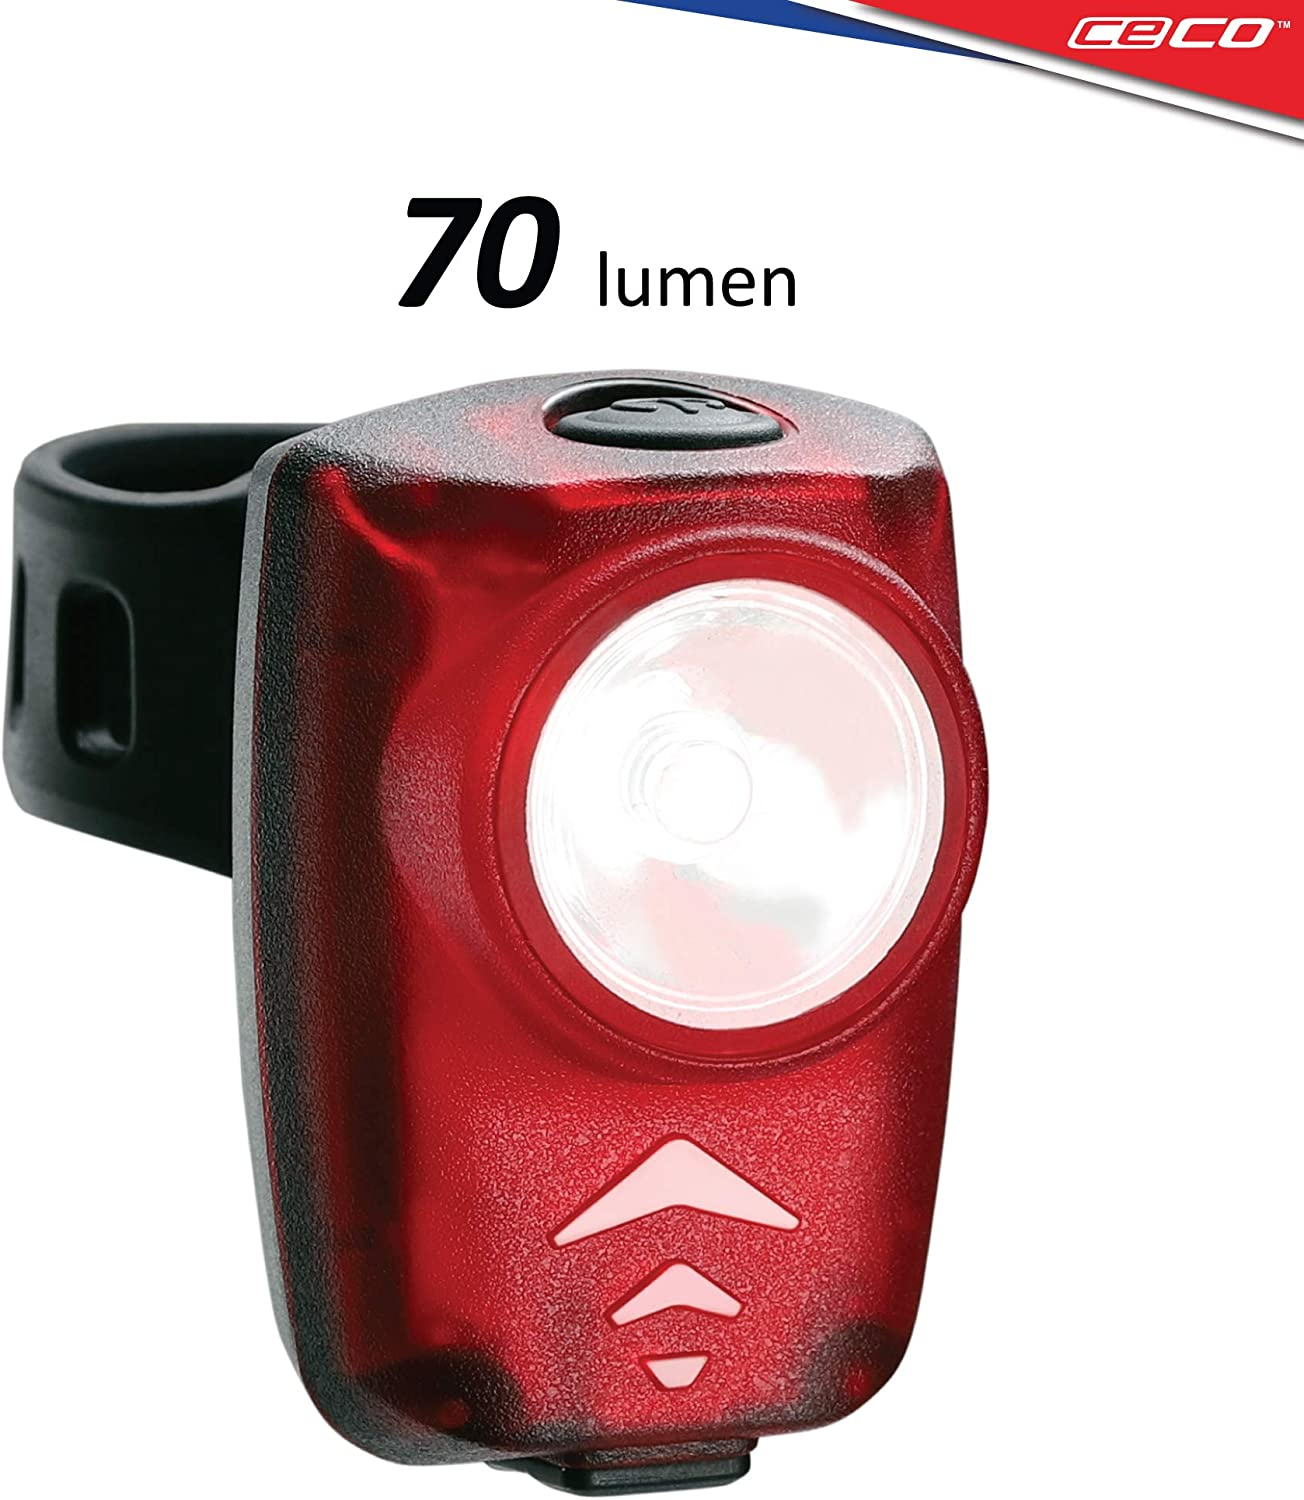 CECO-USA 70 Lumen USB Rechargeable Bike Tail Light – Super Bright Model T70 Bicycle Rear Light – IP67 Waterproof, FL-1 Impact Resistant – Red Safety Light – Pro Grade Quality Bike Tail Light